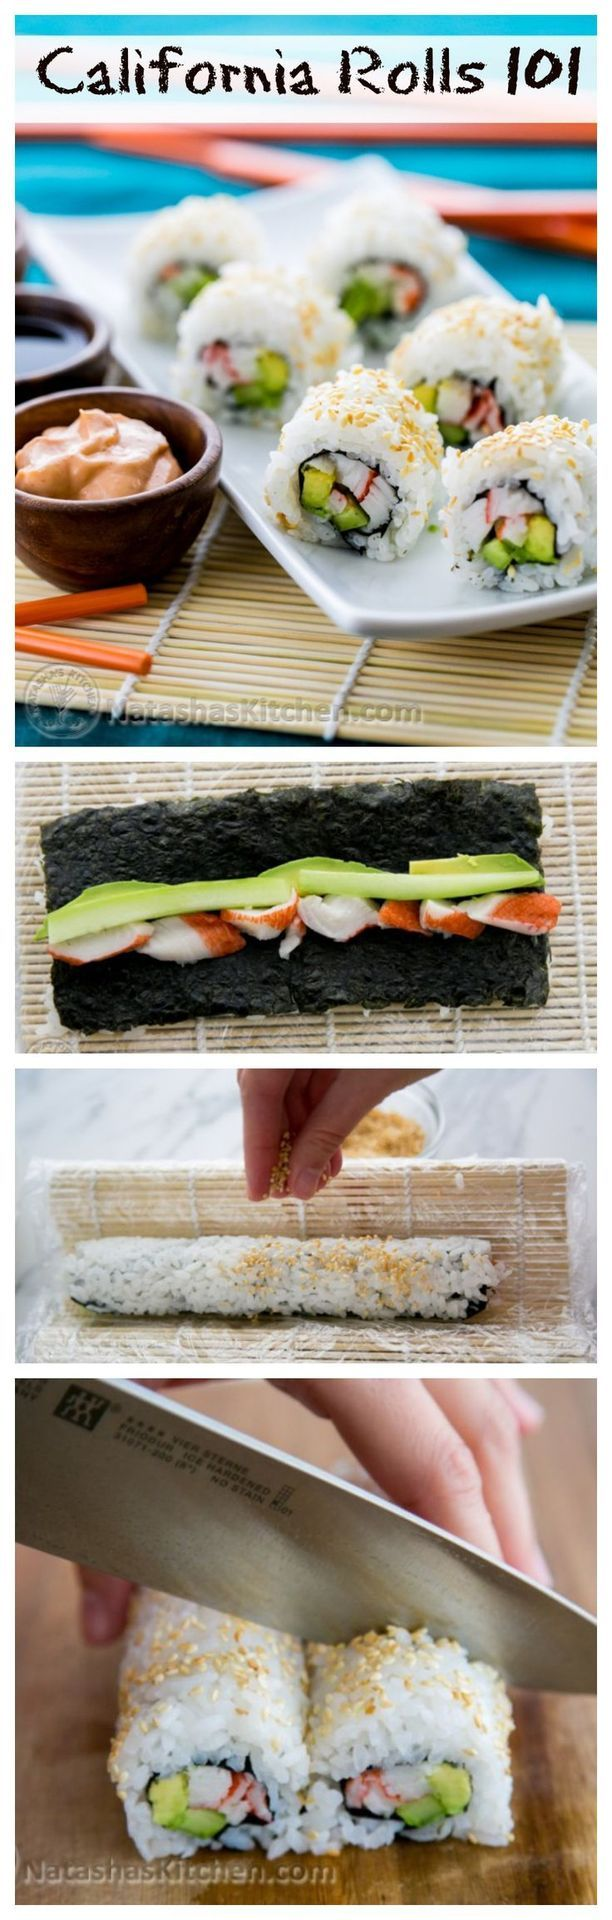 Everything you need to know to make the best California rolls: Perfect sushi rice dips sauces and secret techniques! A full step-by-step photo tutorial! @NatashasKitchen